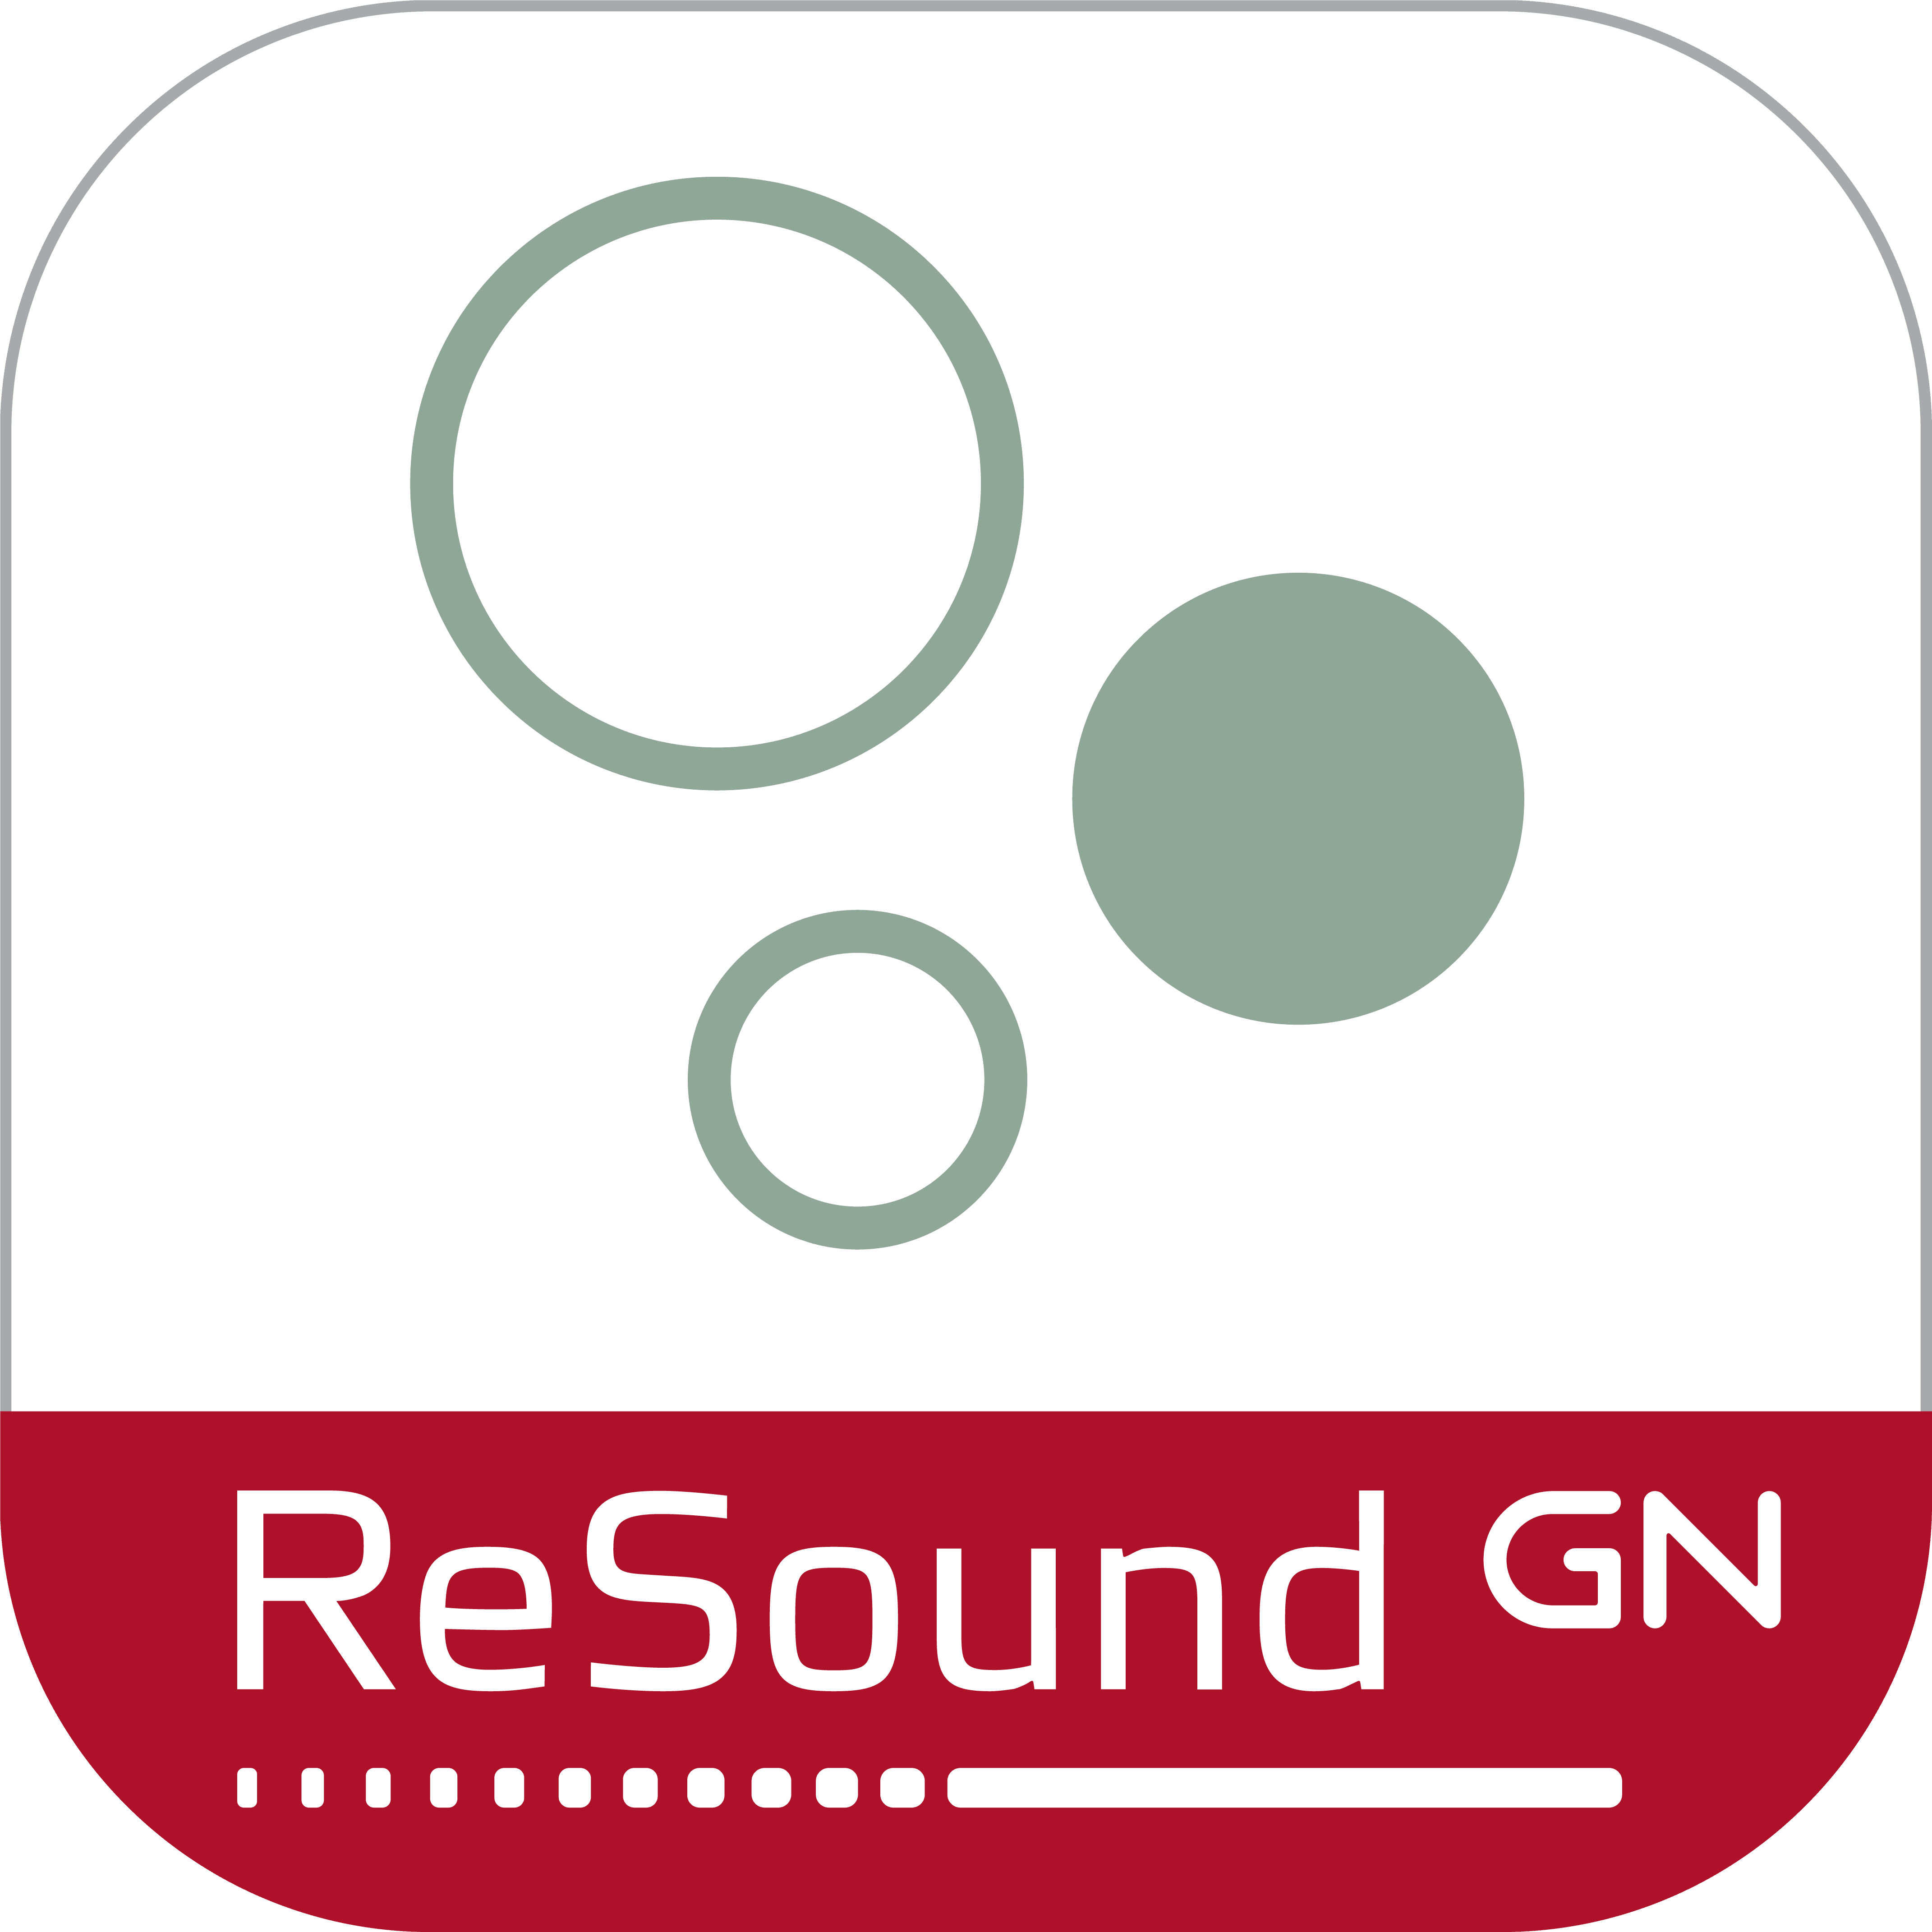 ReSound Relief app icon.